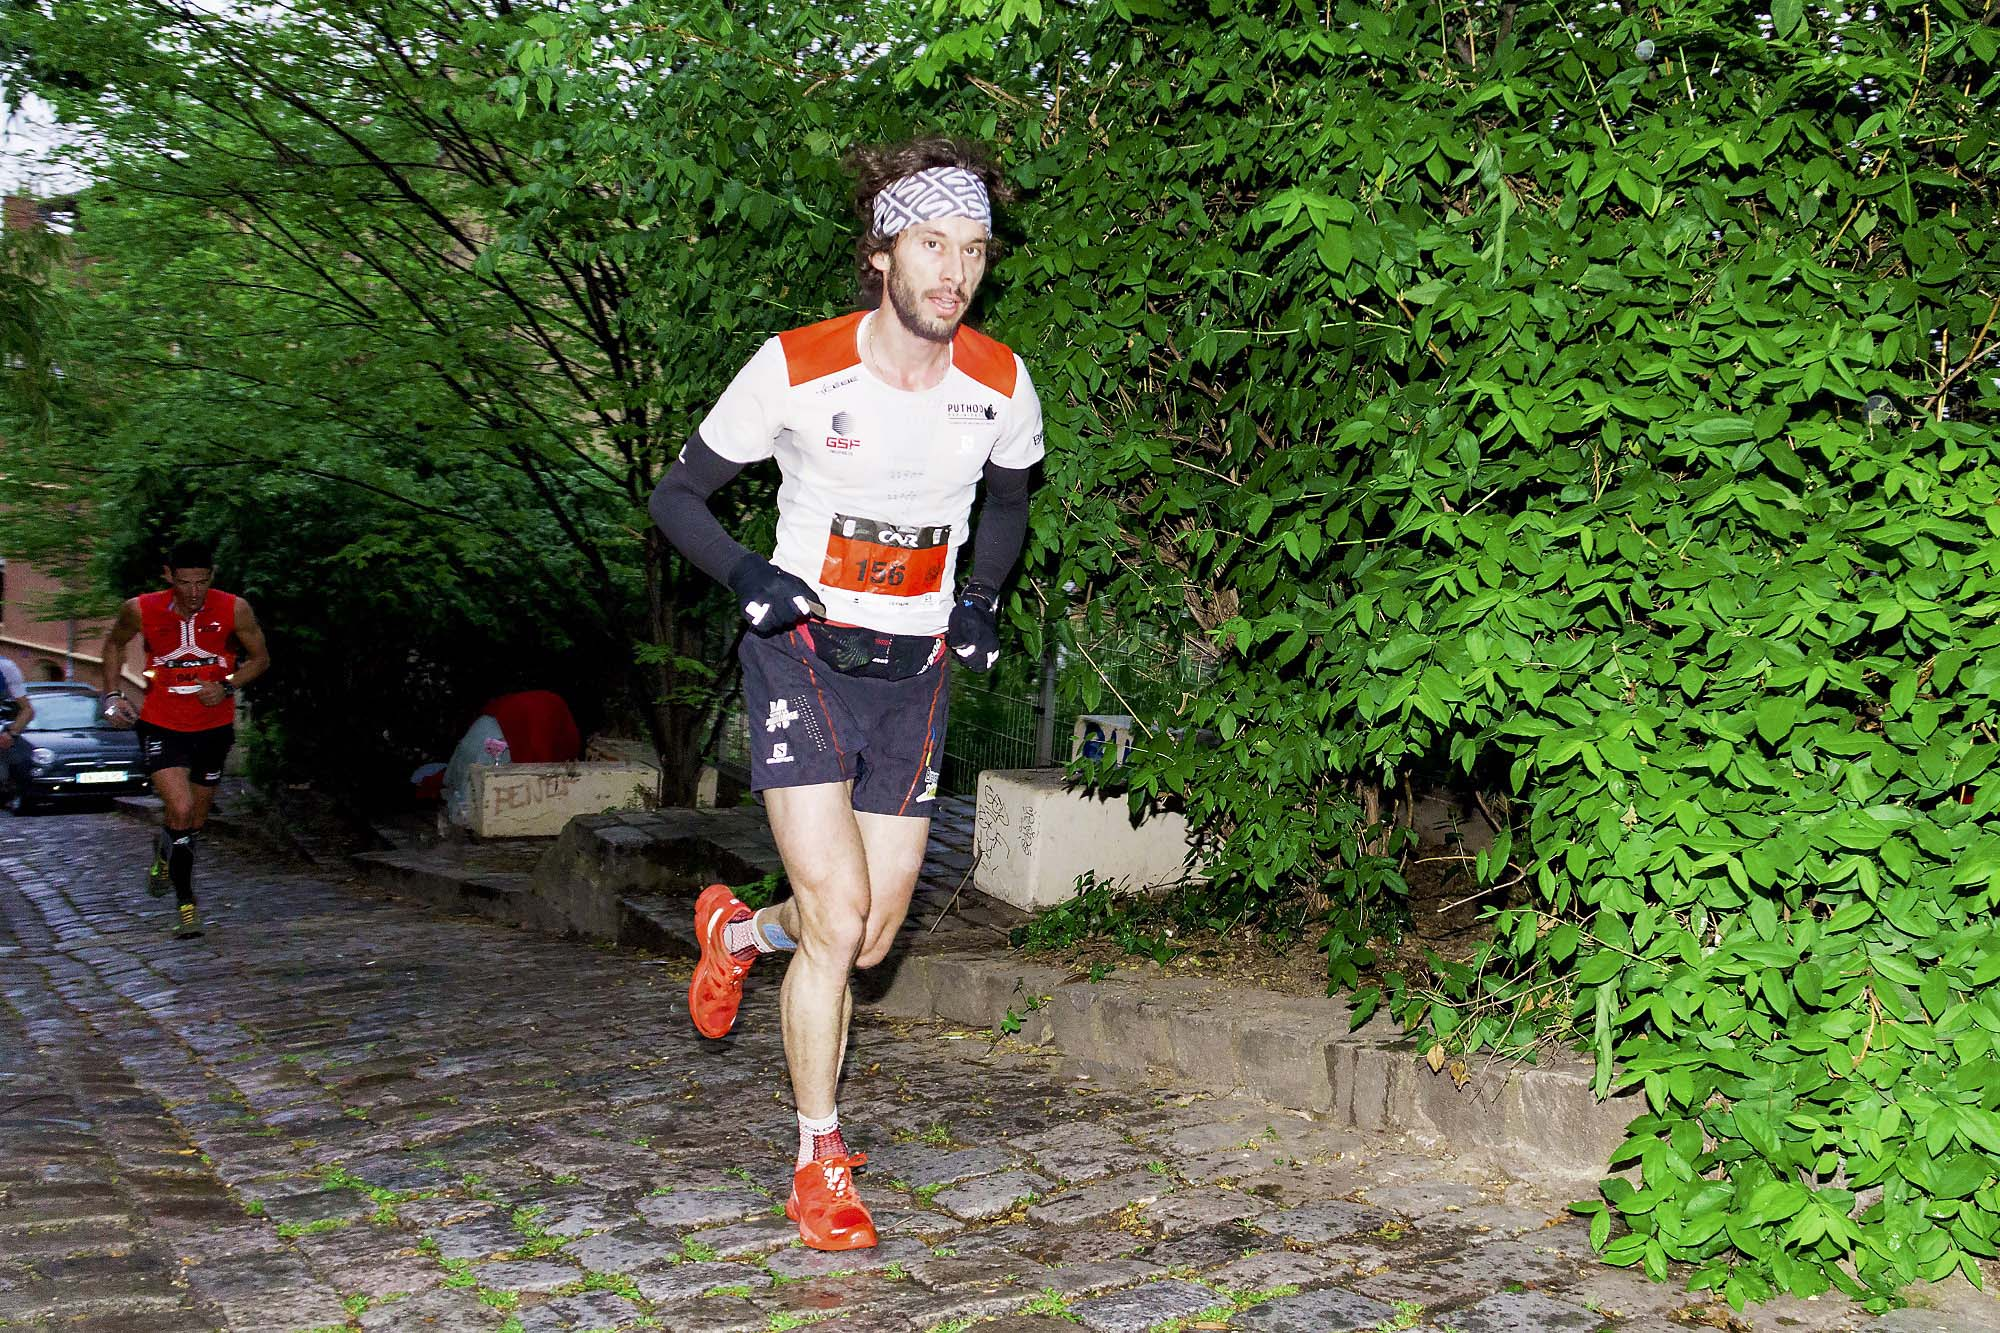 4 Thibaut Baronian photo Goran Mojicevic Passion Trail - RESULTATS ET COMMENTAIRES DU LYON URBAN TRAIL 2017 (par Robert Goin)